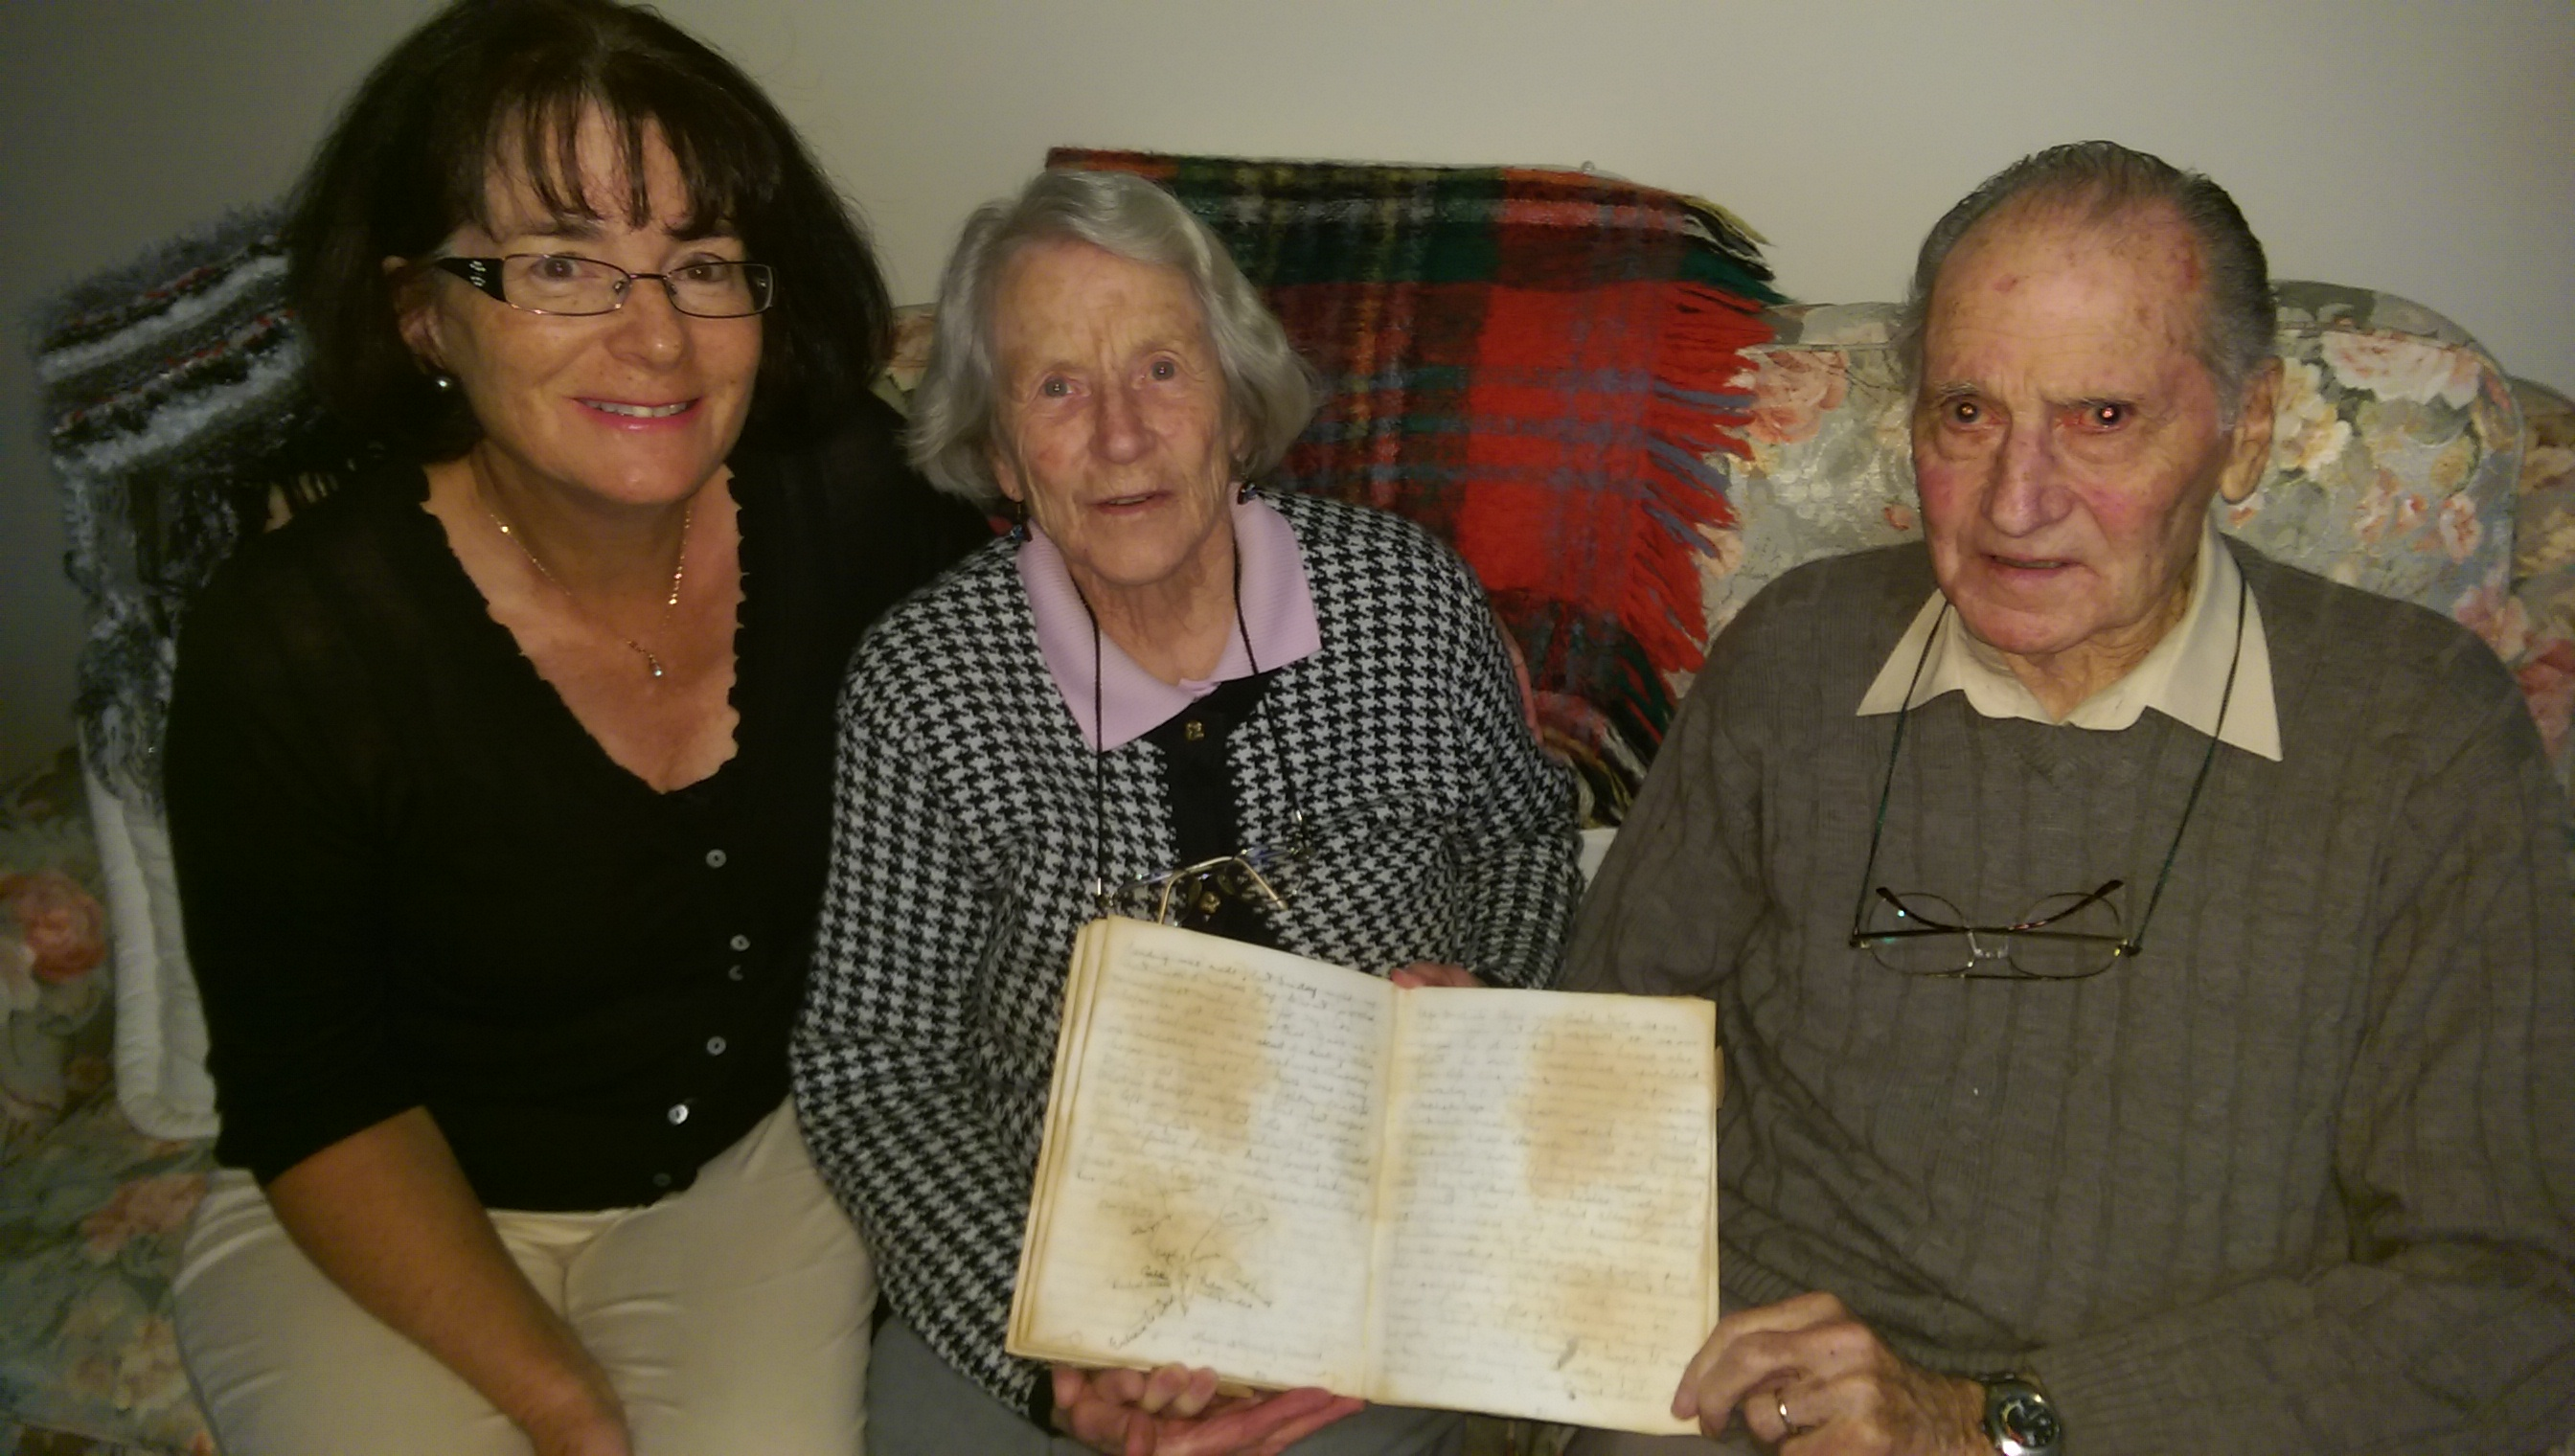 BRENDA ELZARKA & MAVIS & MAX MARSHALL WITH CLEMENTINA MARSHALL ANZAC DAY 25TH APRIL 1915 DIARY